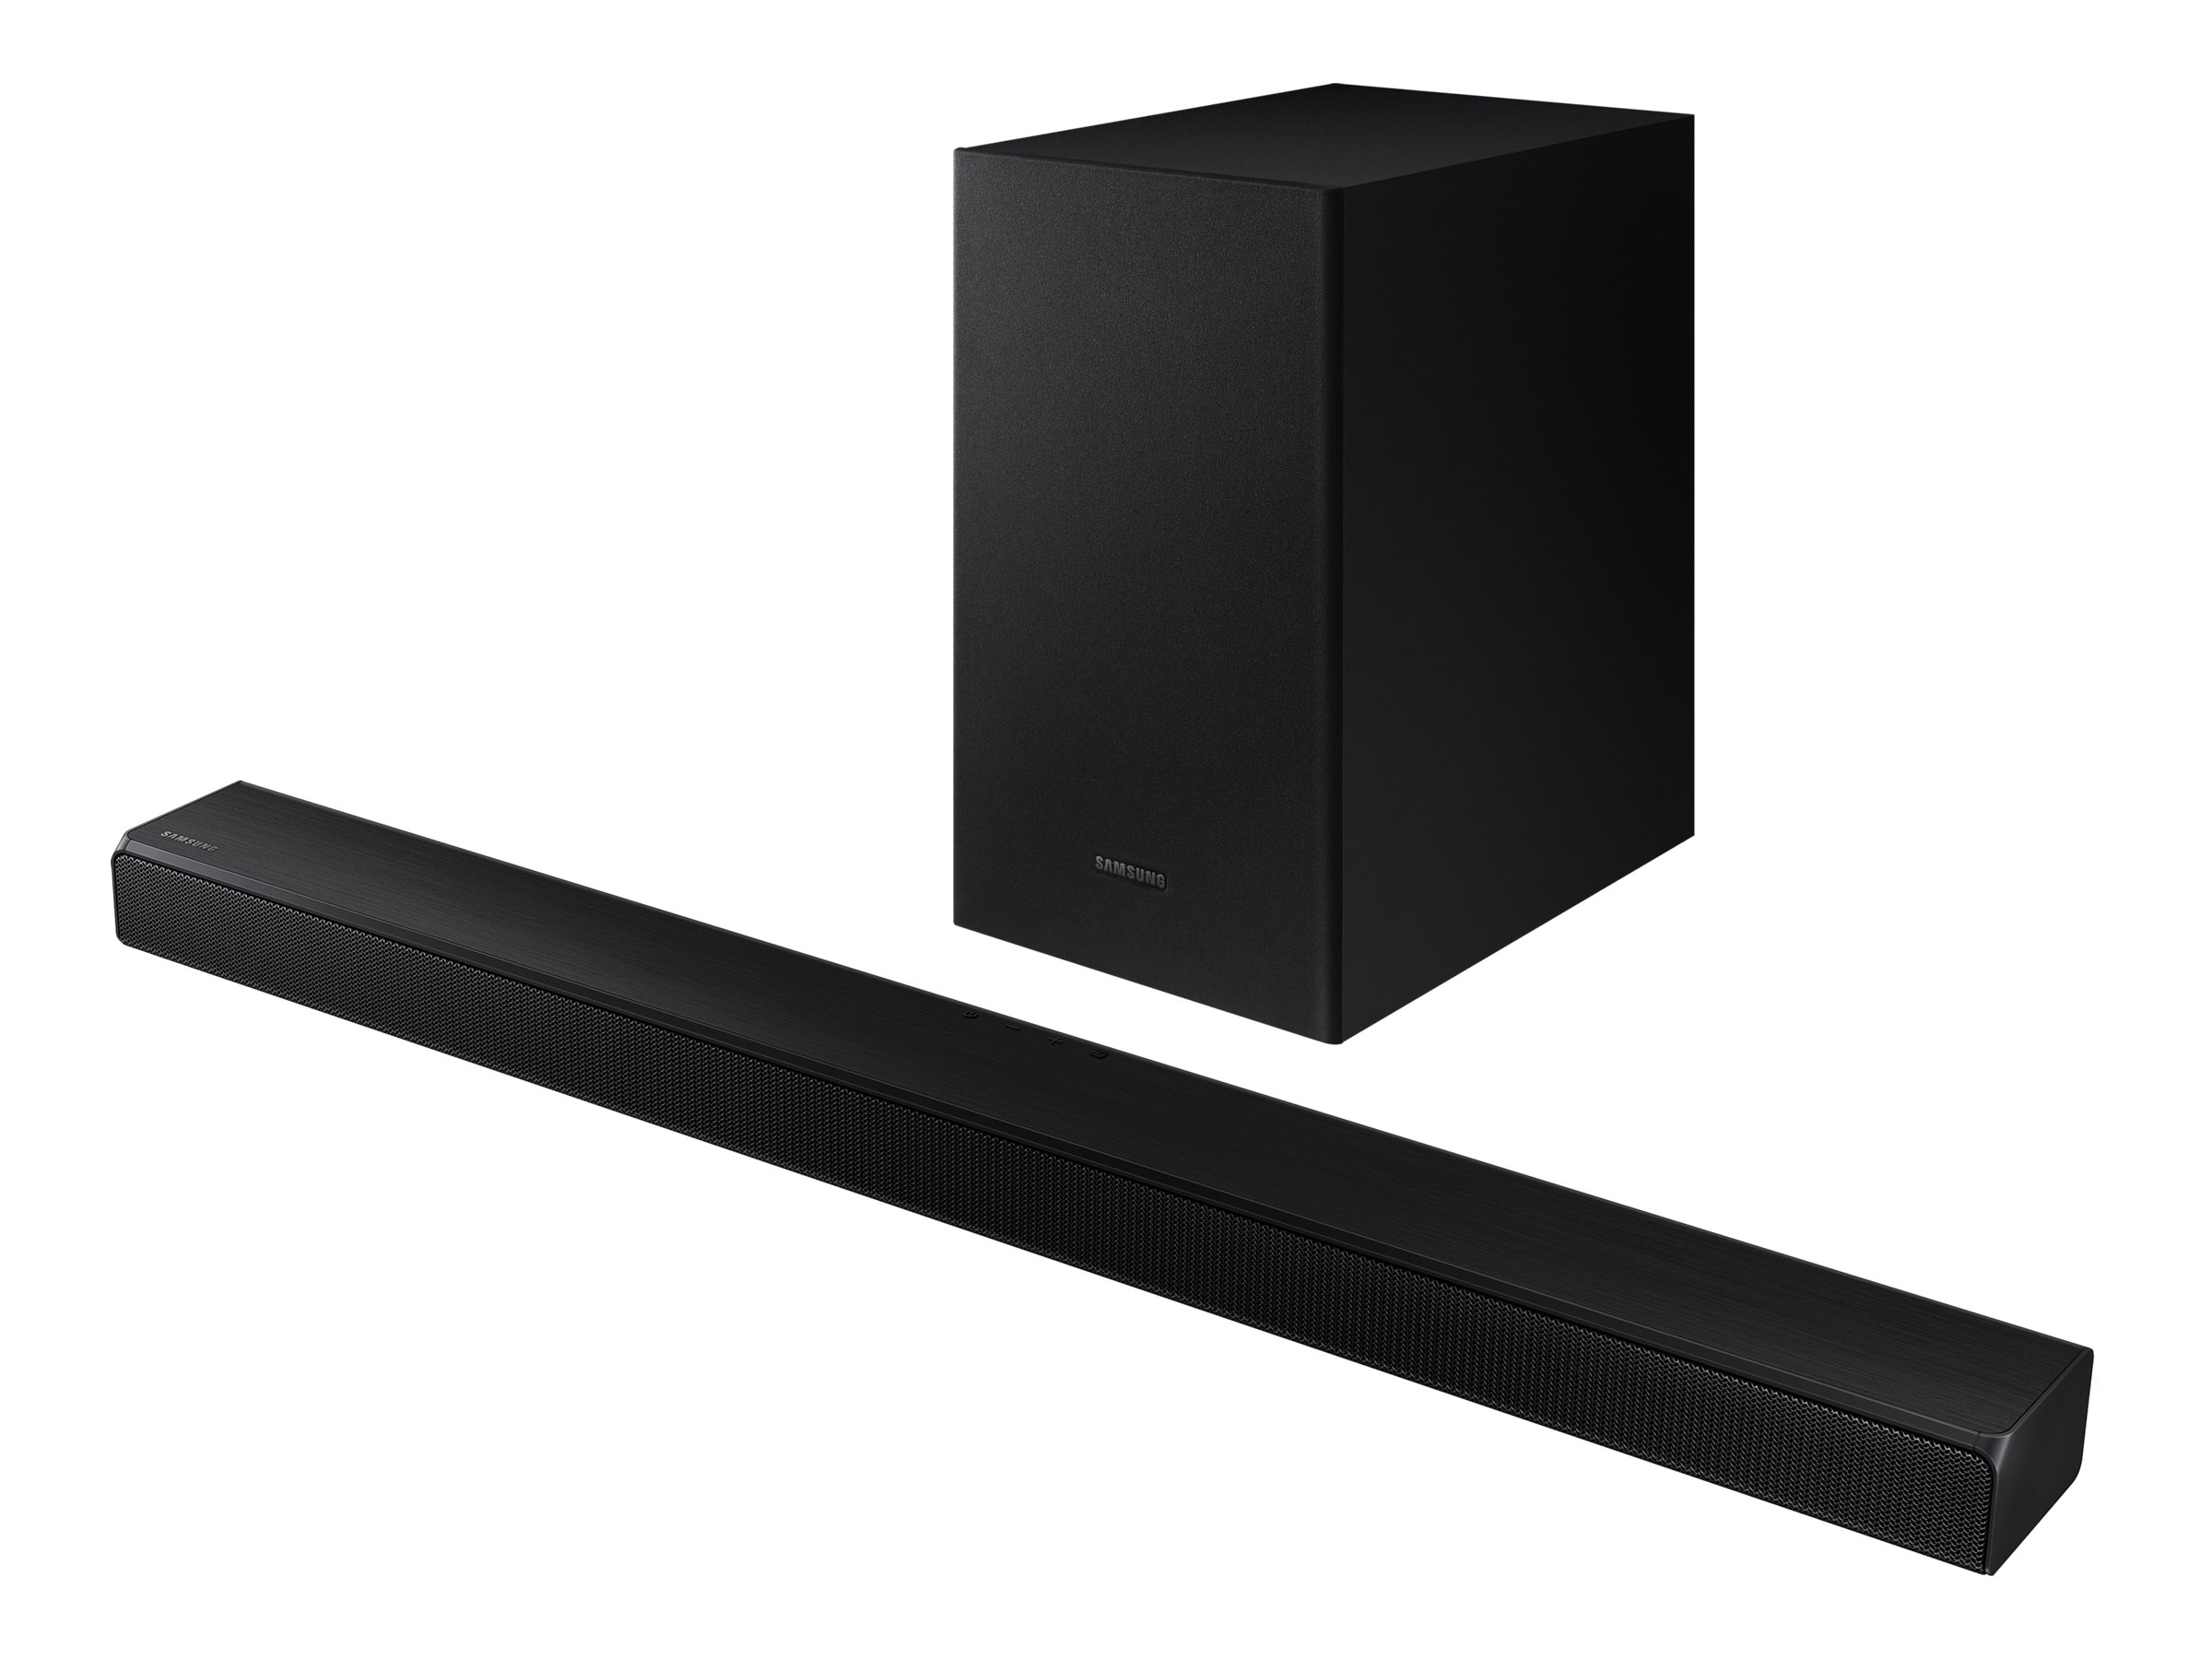 Samsung HW-T550 - sound bar system - wireless